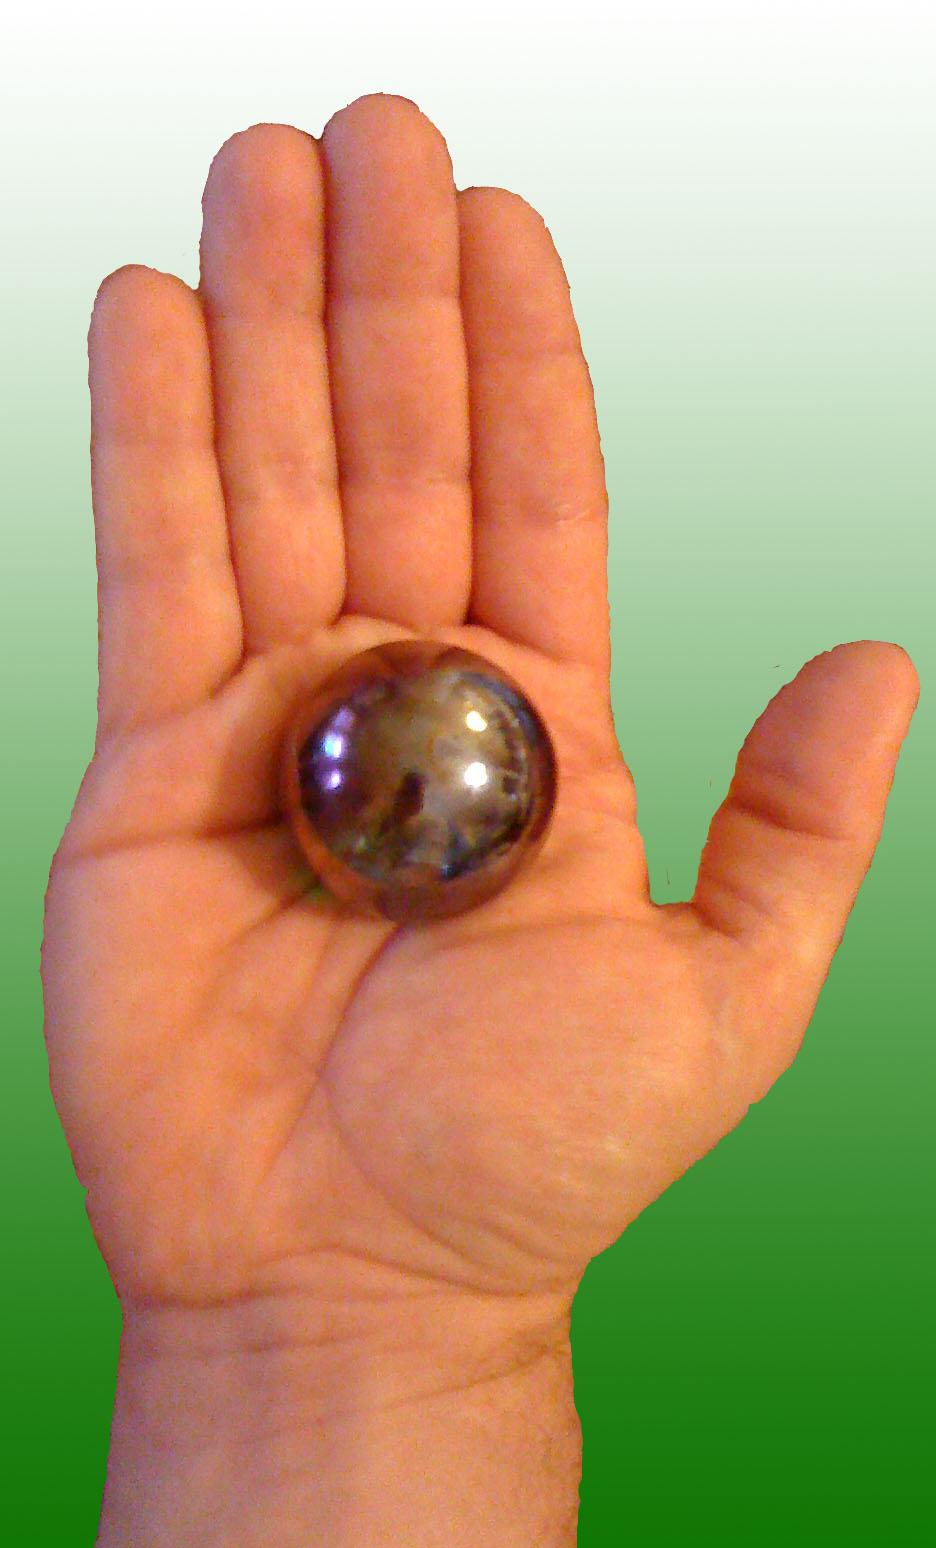 Thorium Ball in Hand